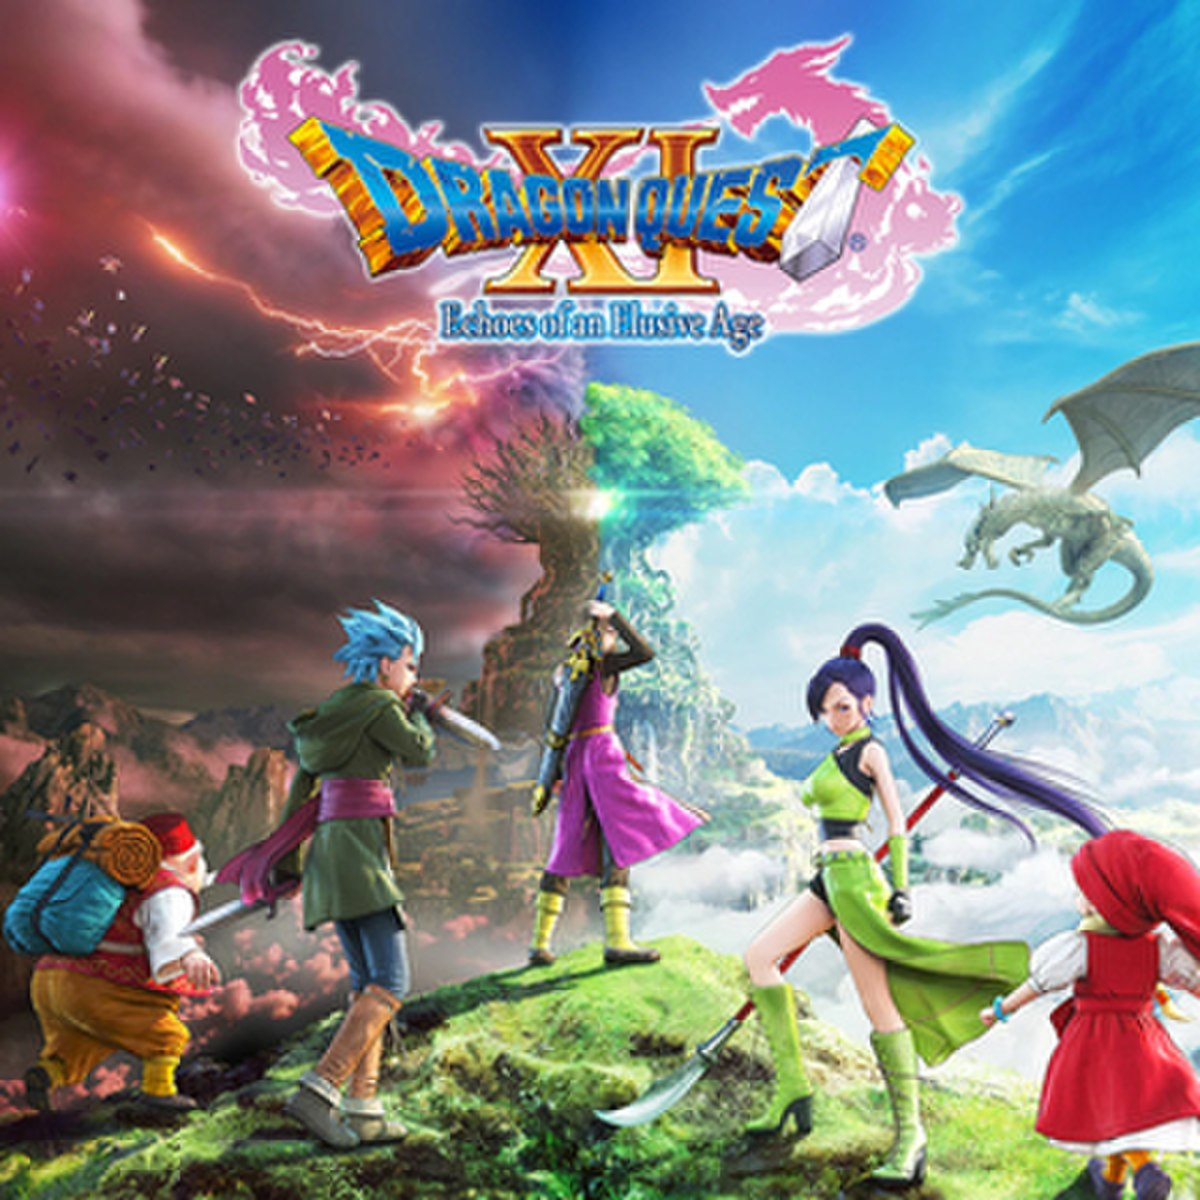 Dragon Quest Wikipedia: Dragon Quest XI